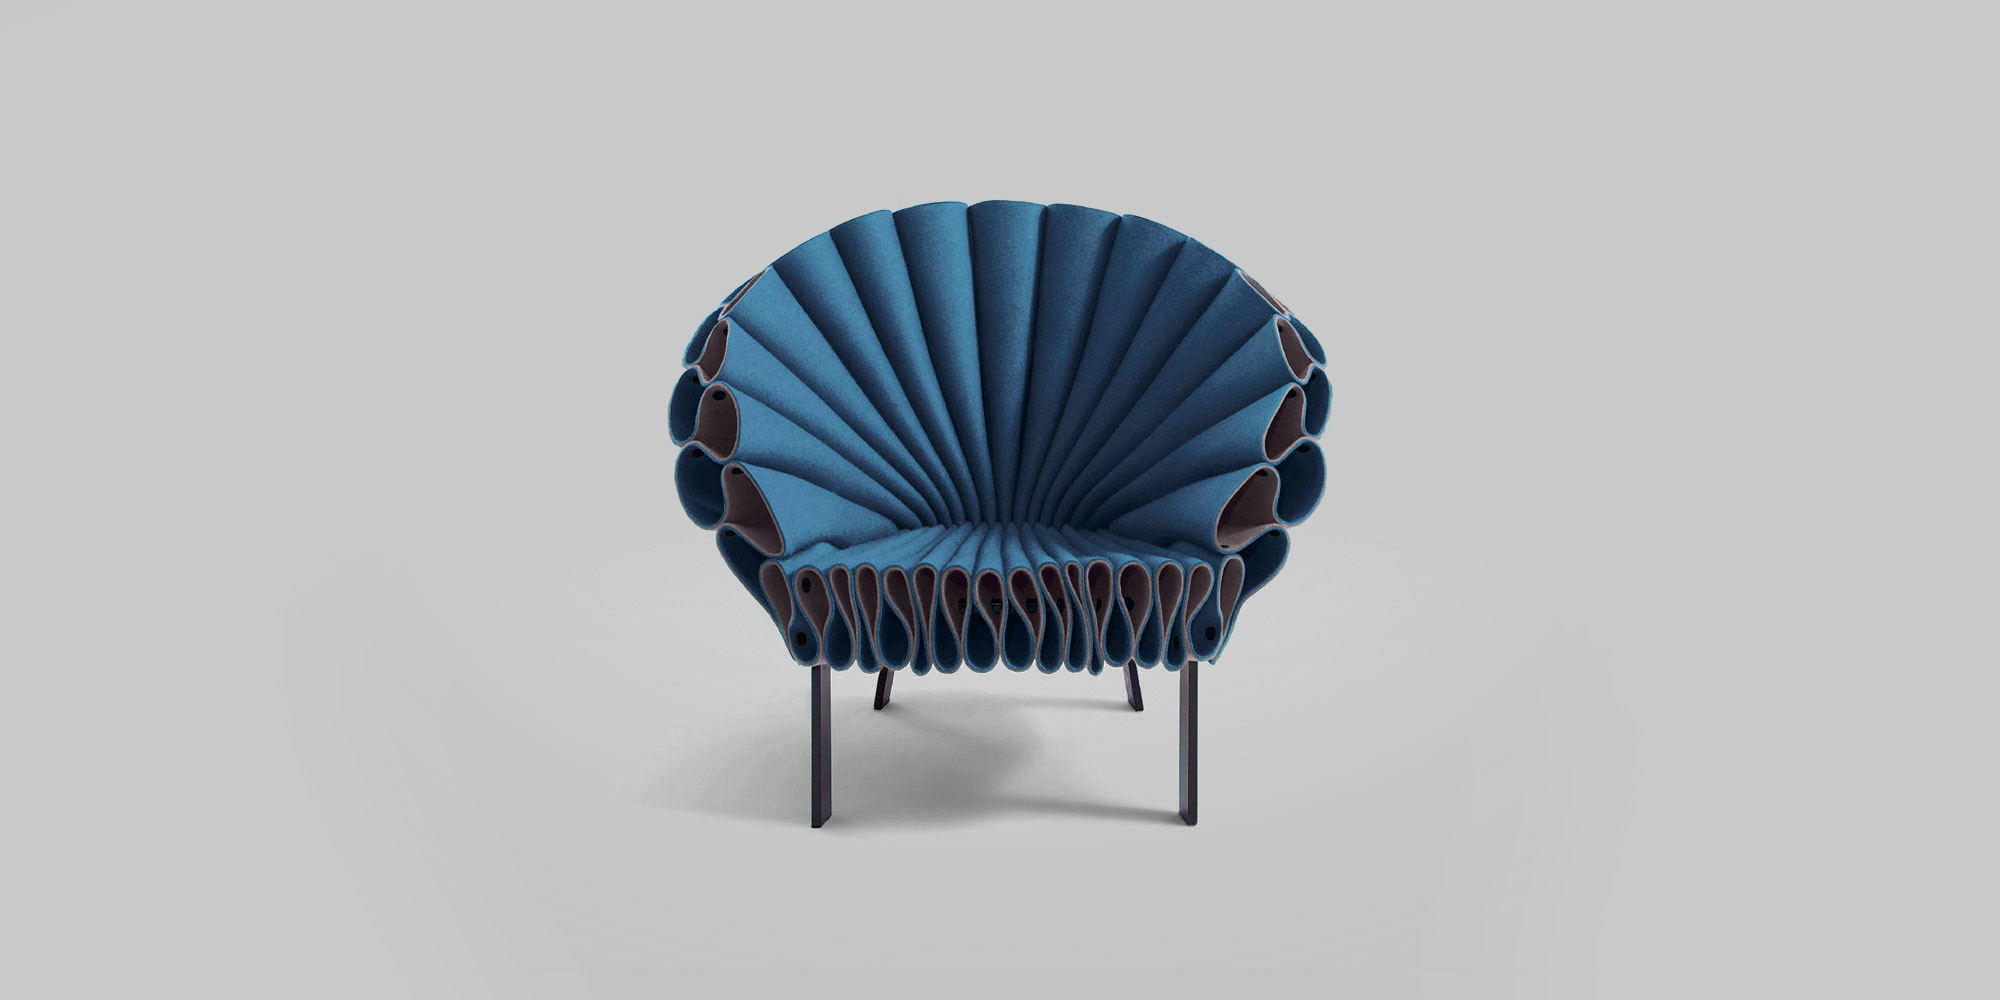 Peacock Chair   Client: Cappellini (Work done at Dror.)  2009  Now a permanent piece in the Metropolitan Museum of Art, the Peacock Chair resembles the physical aspects of a peacock and extracts metaphorical substance from its feathers. Clabots designed this chair to have structure and strength from the peacock-like folds, creating a comfortable lounge chair with no sewing or upholstery involved.  Award:  Selected for Metropolitan Museum of Art Permanent Collection 2010